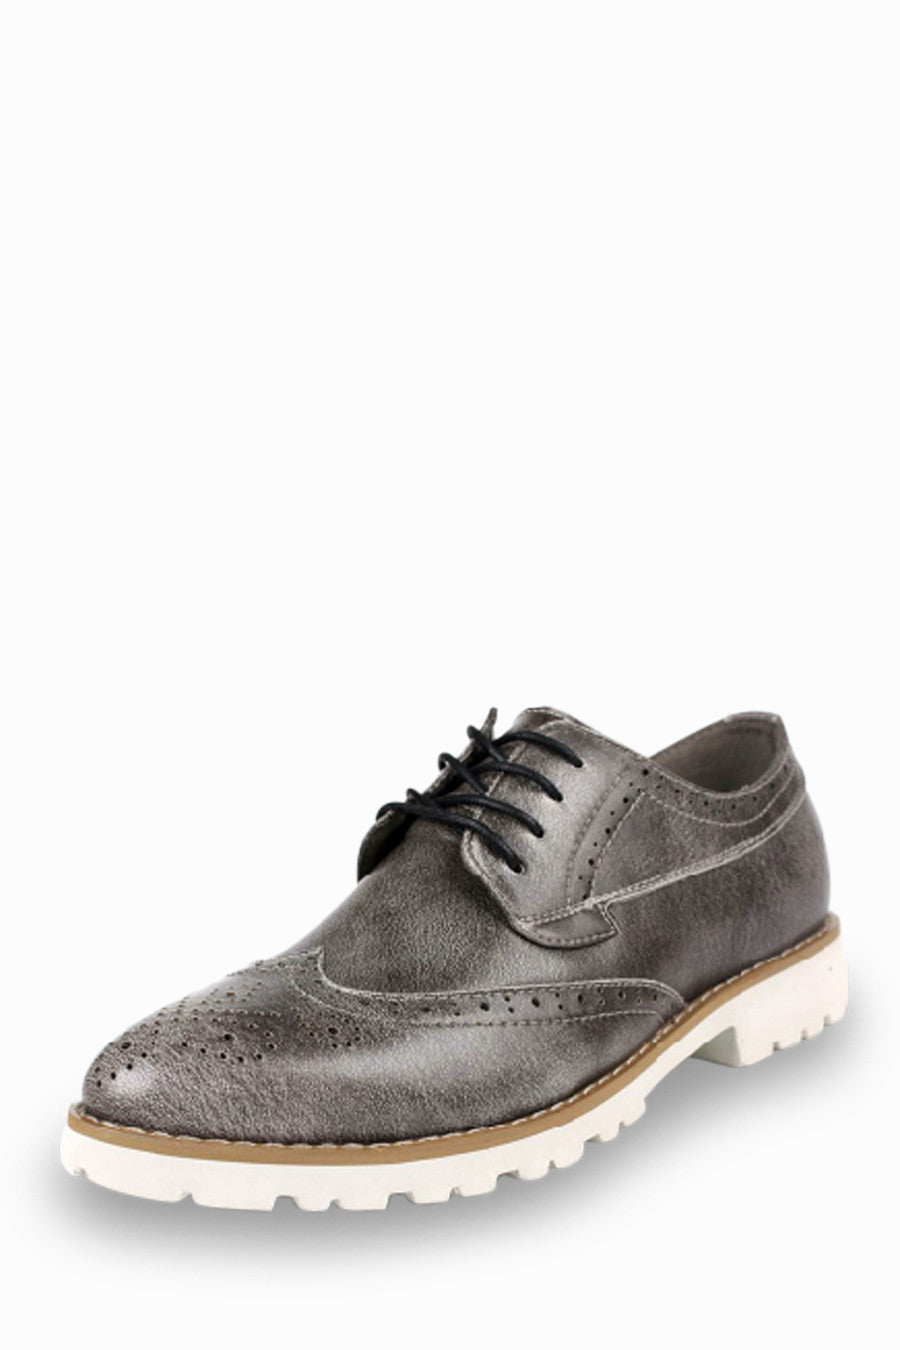 Leather Dress Shoes In Grey